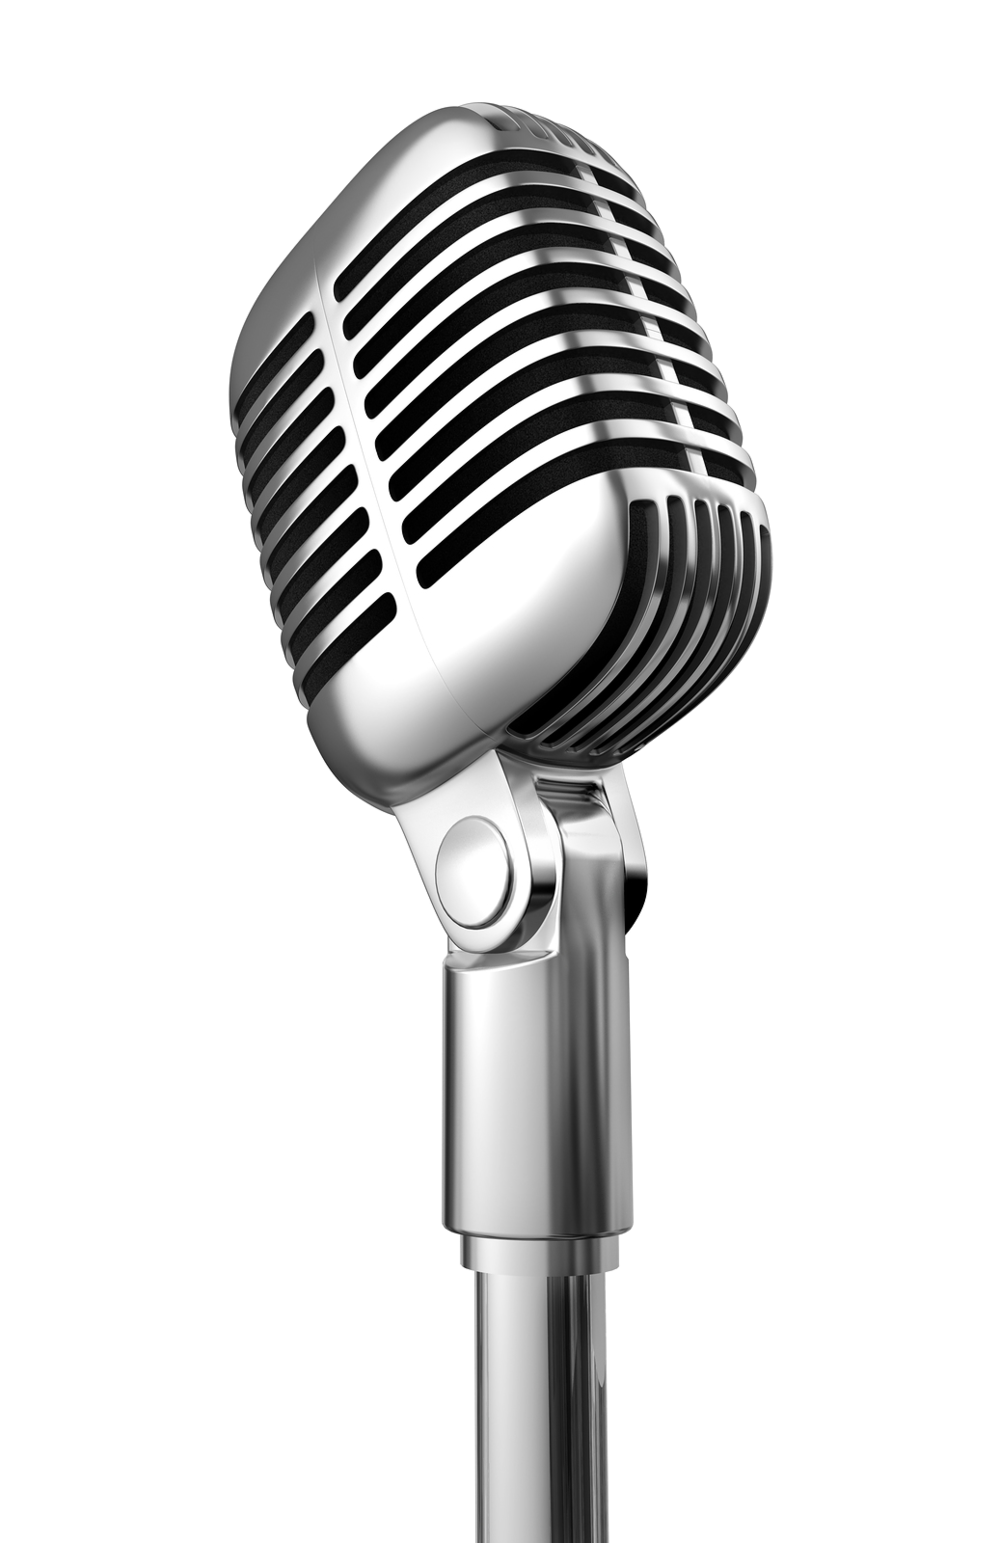 Microphone-PNG-Image.png